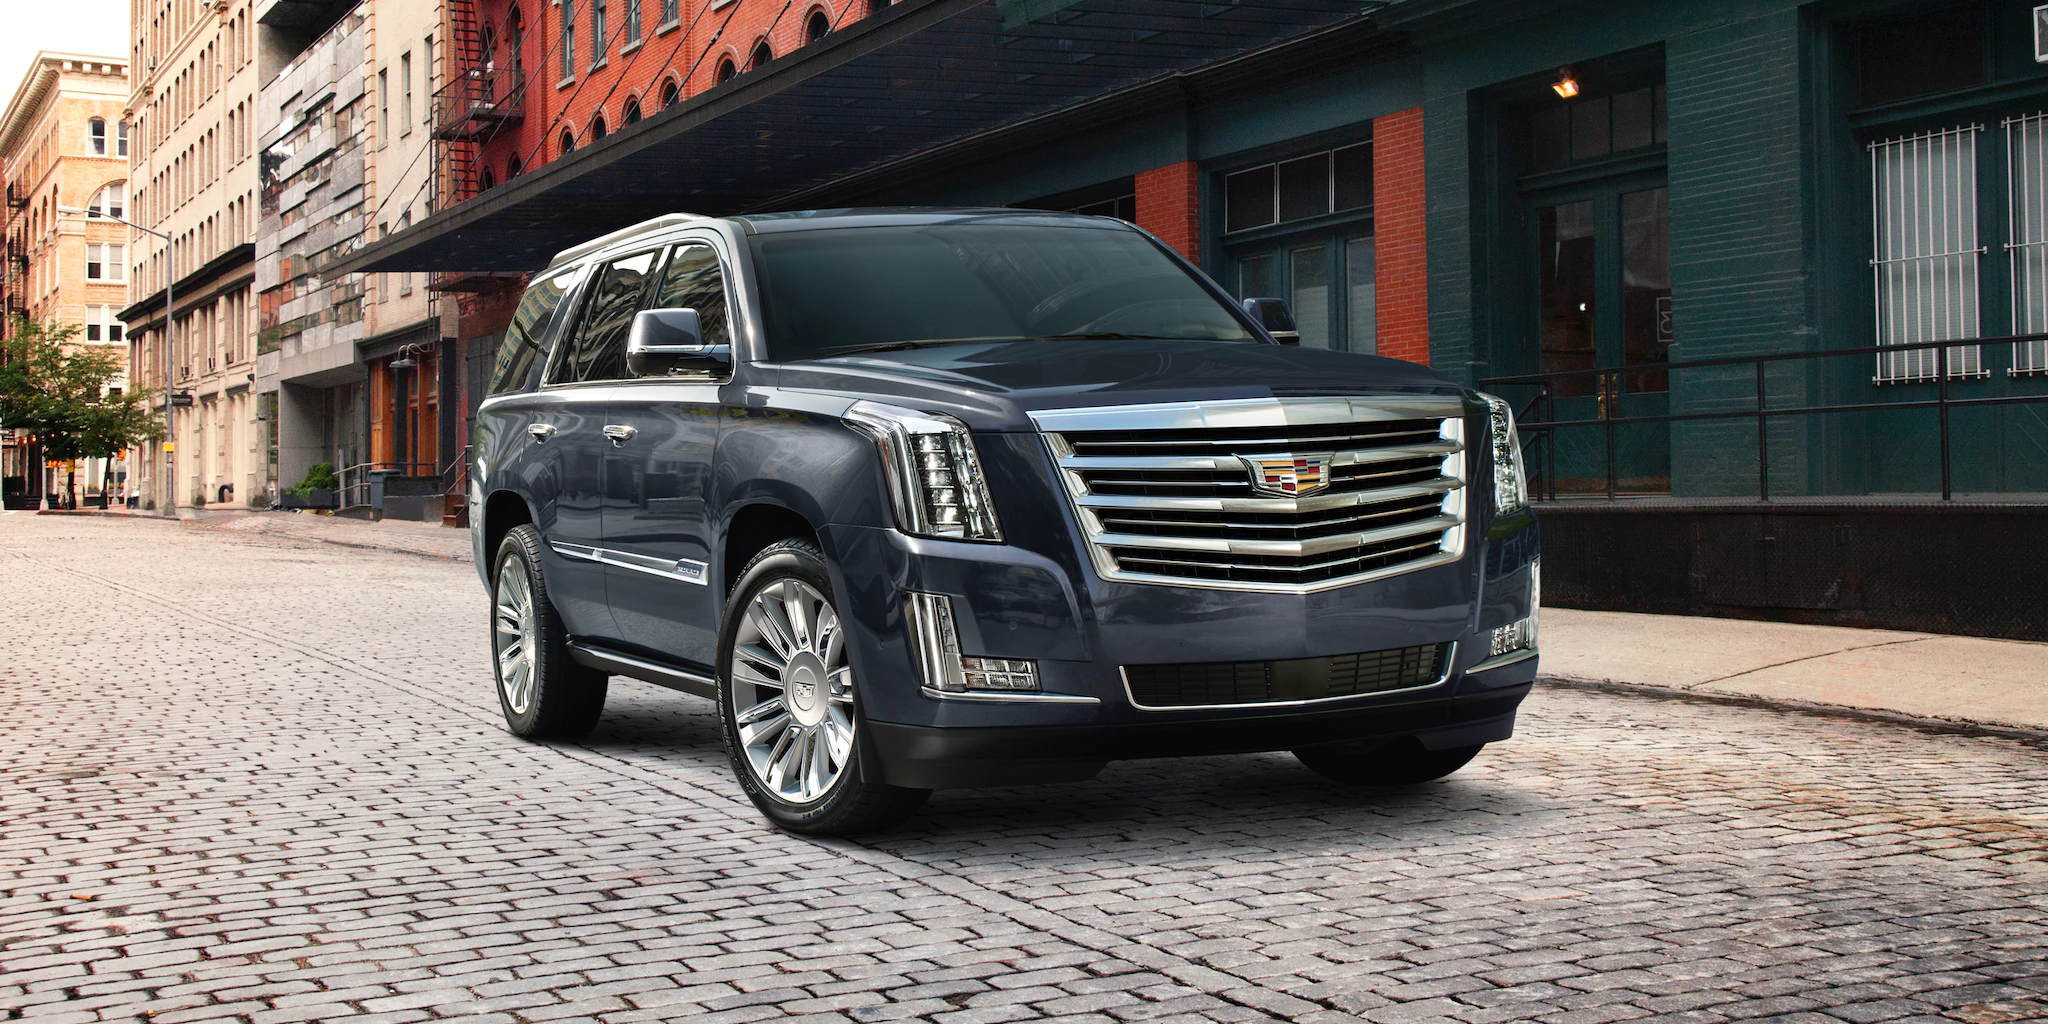 2021 cadillac escalade teases 38inch curved oled display